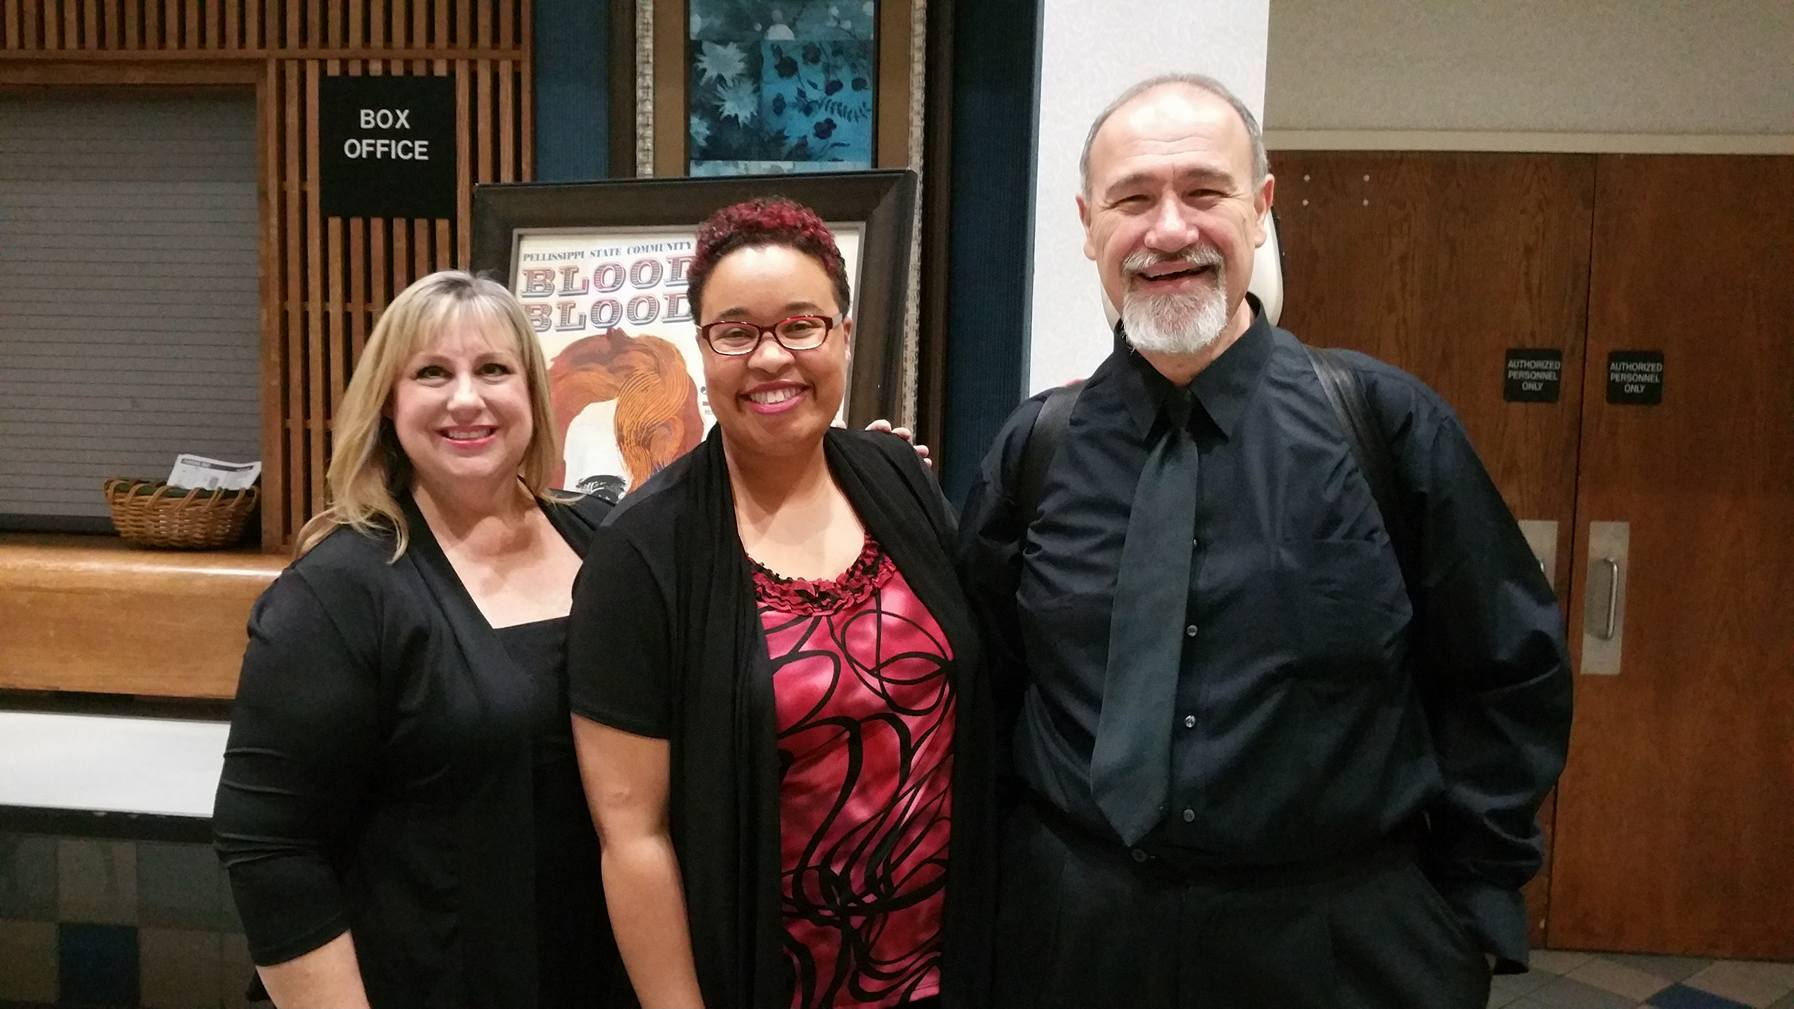 PSCC String Faculty